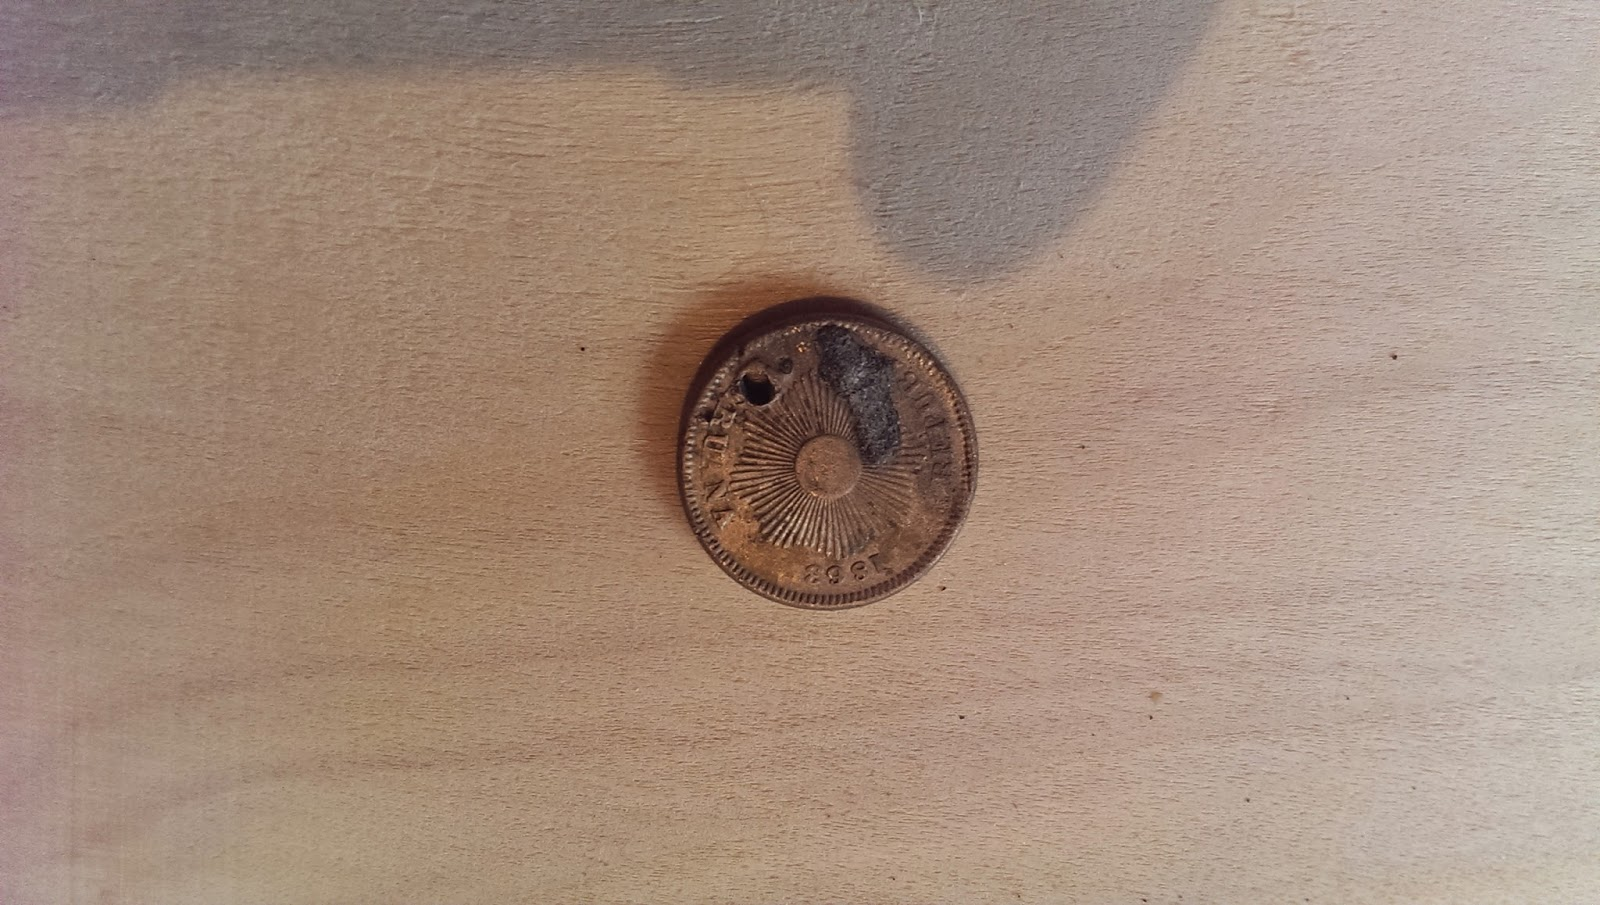 A picture of an unknown coin that was found whilst metal detecting